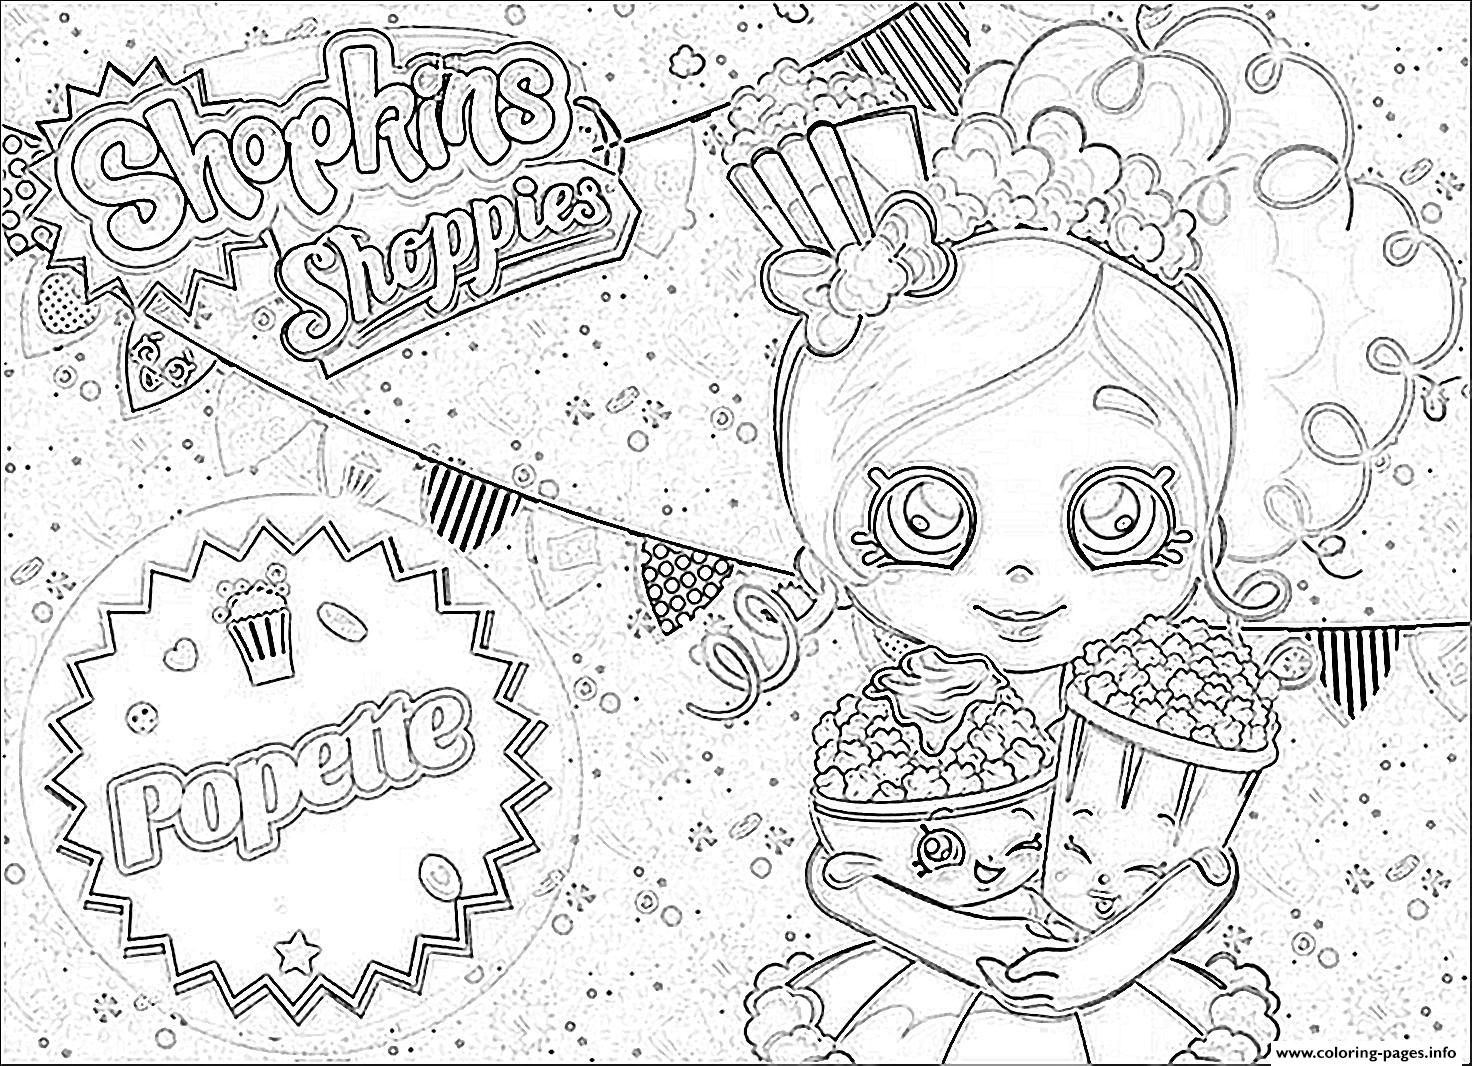 1472x1066 Awesome Shopkins Popette Official Coloring Pages Free Printable